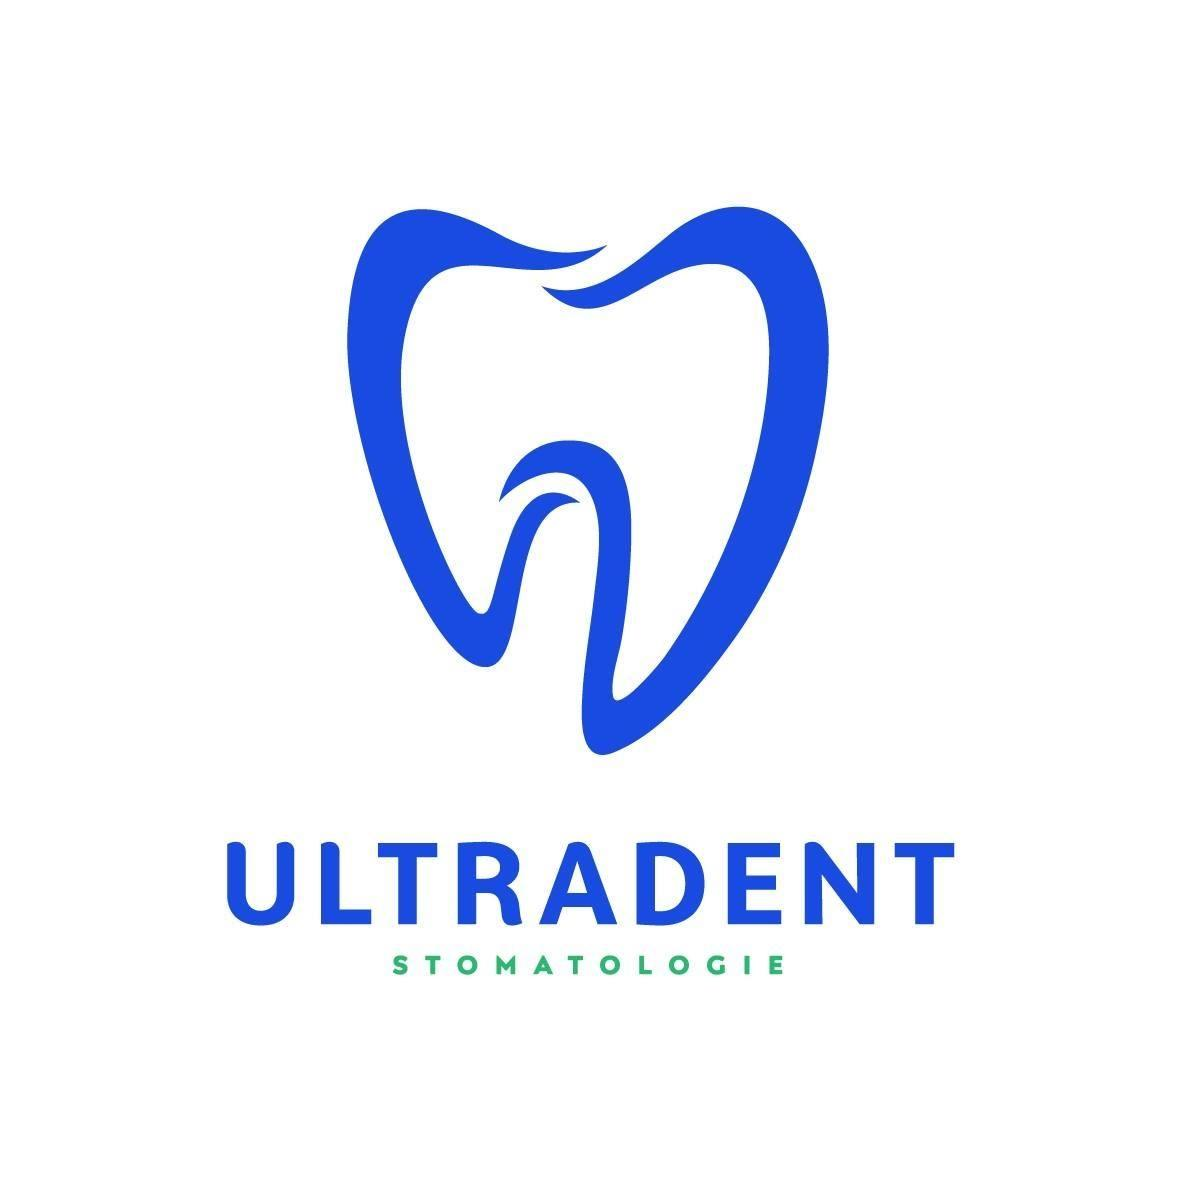 Ultradent.md Logo